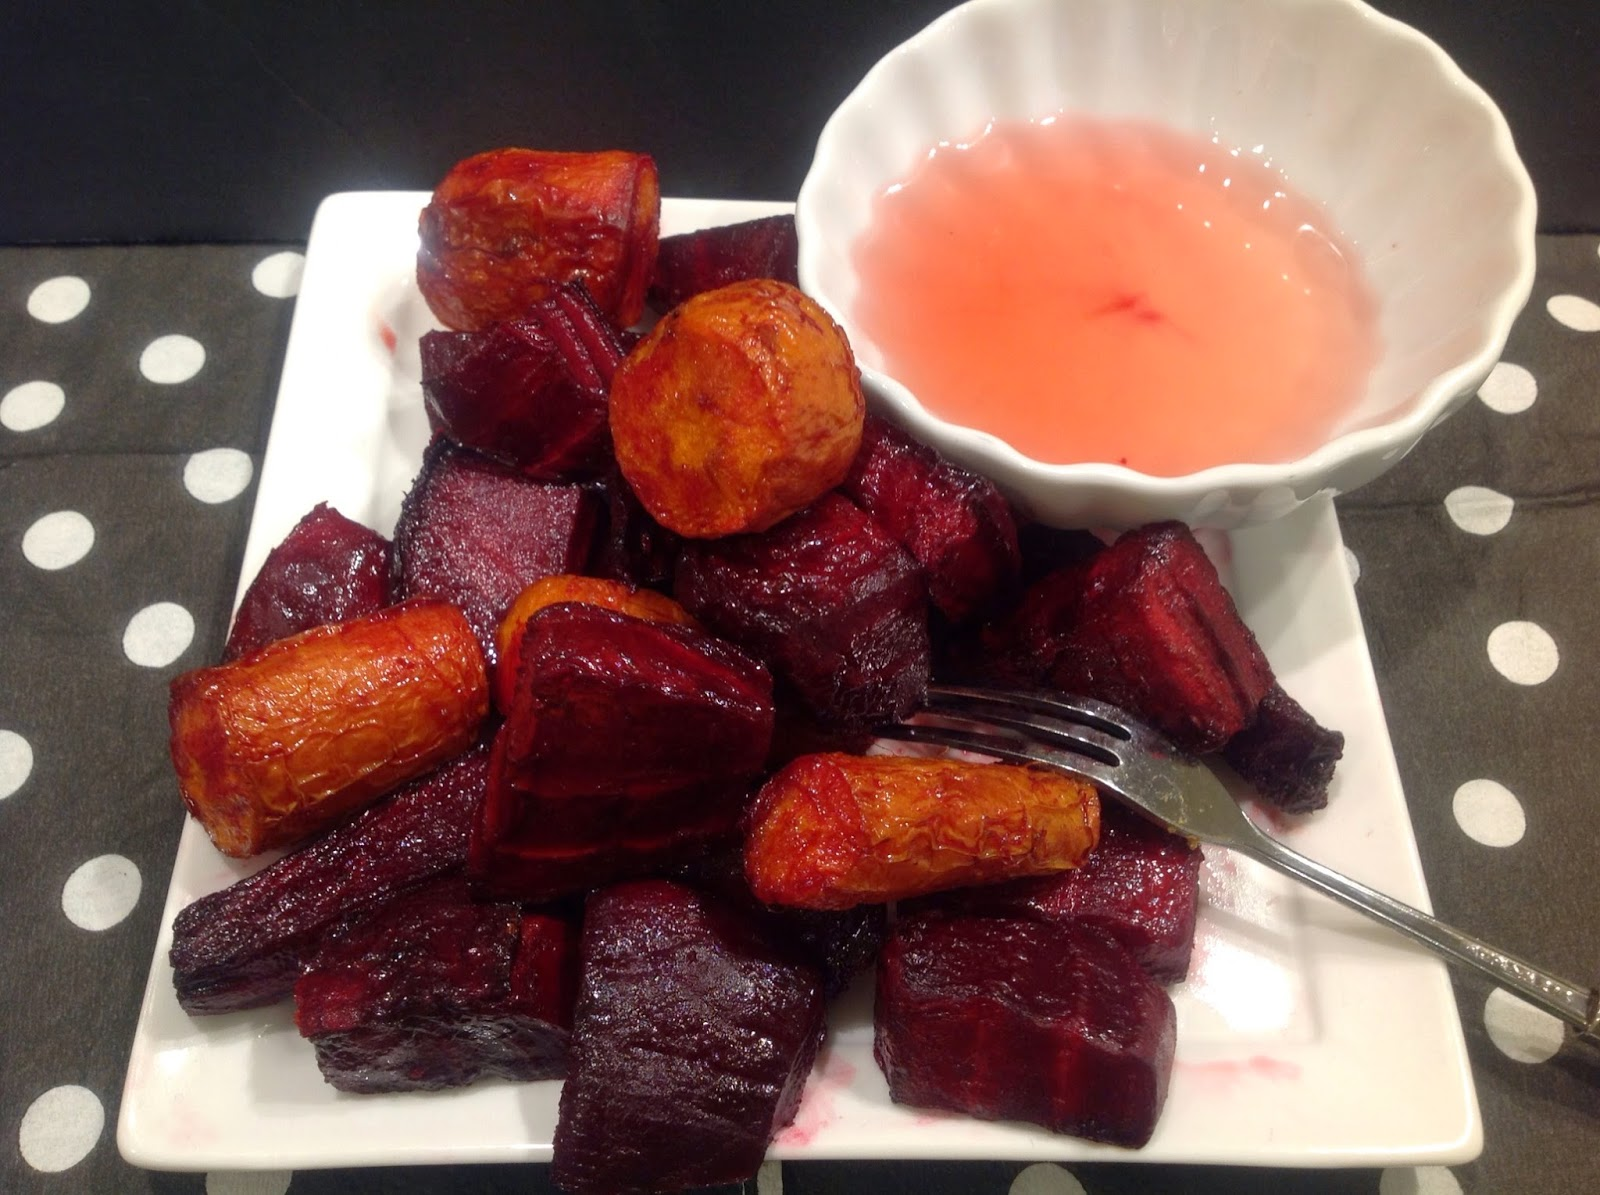 beets and carrots with dip